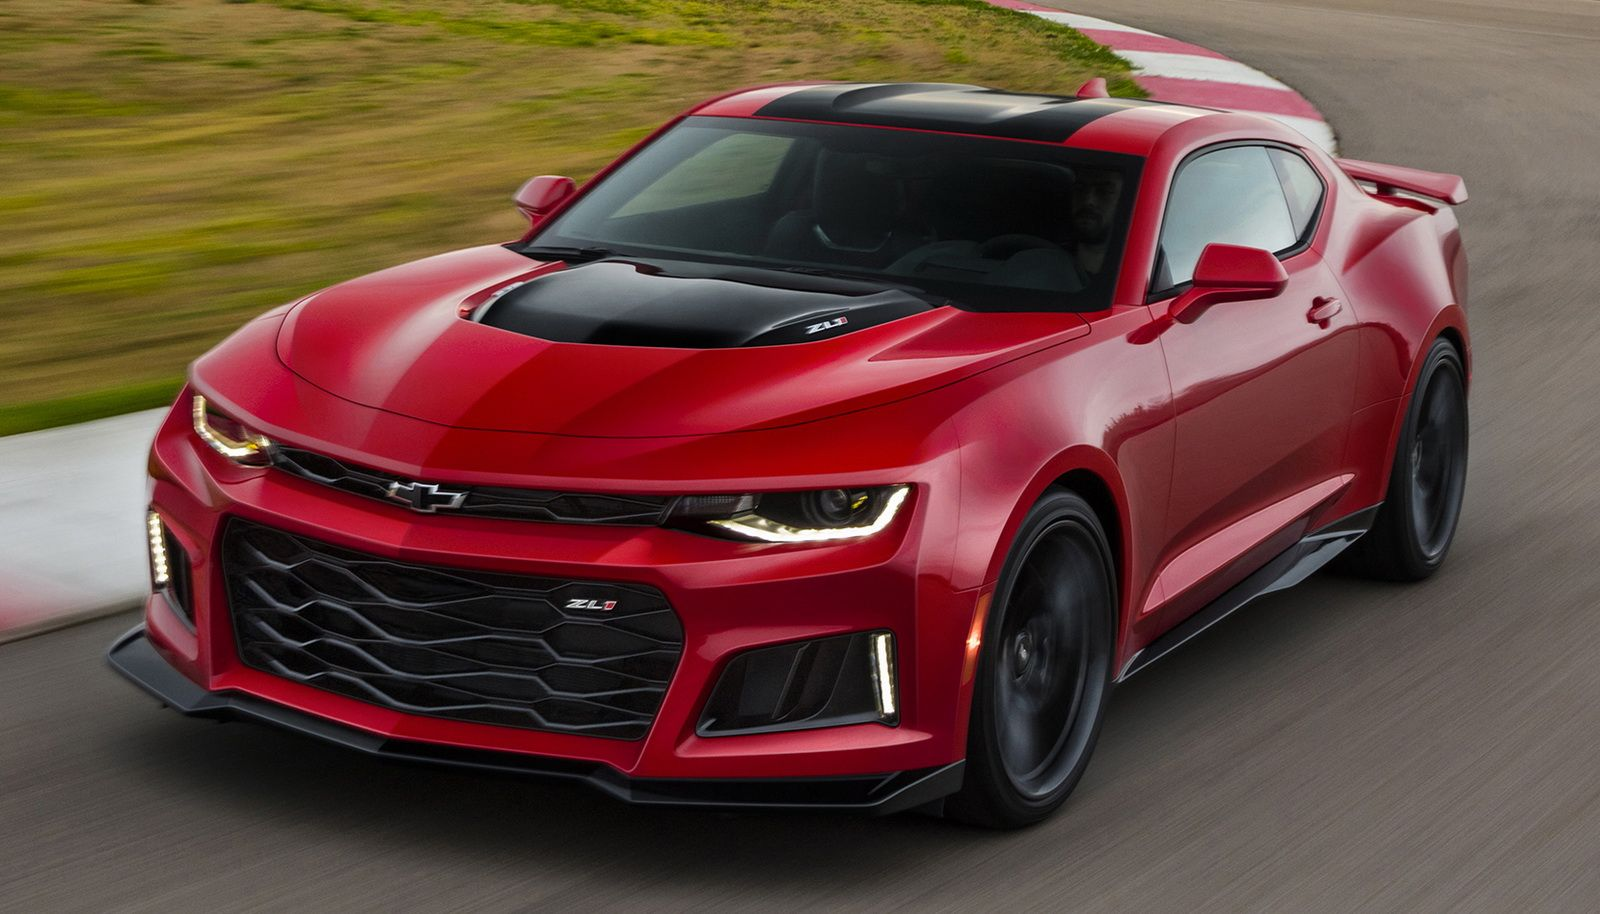 2017 Chevrolet Camaro Zl1 Is The Pinnacle Of Chevy S Engineering With Images Camaro Zl1 Chevrolet Camaro Chevy Camaro Zl1